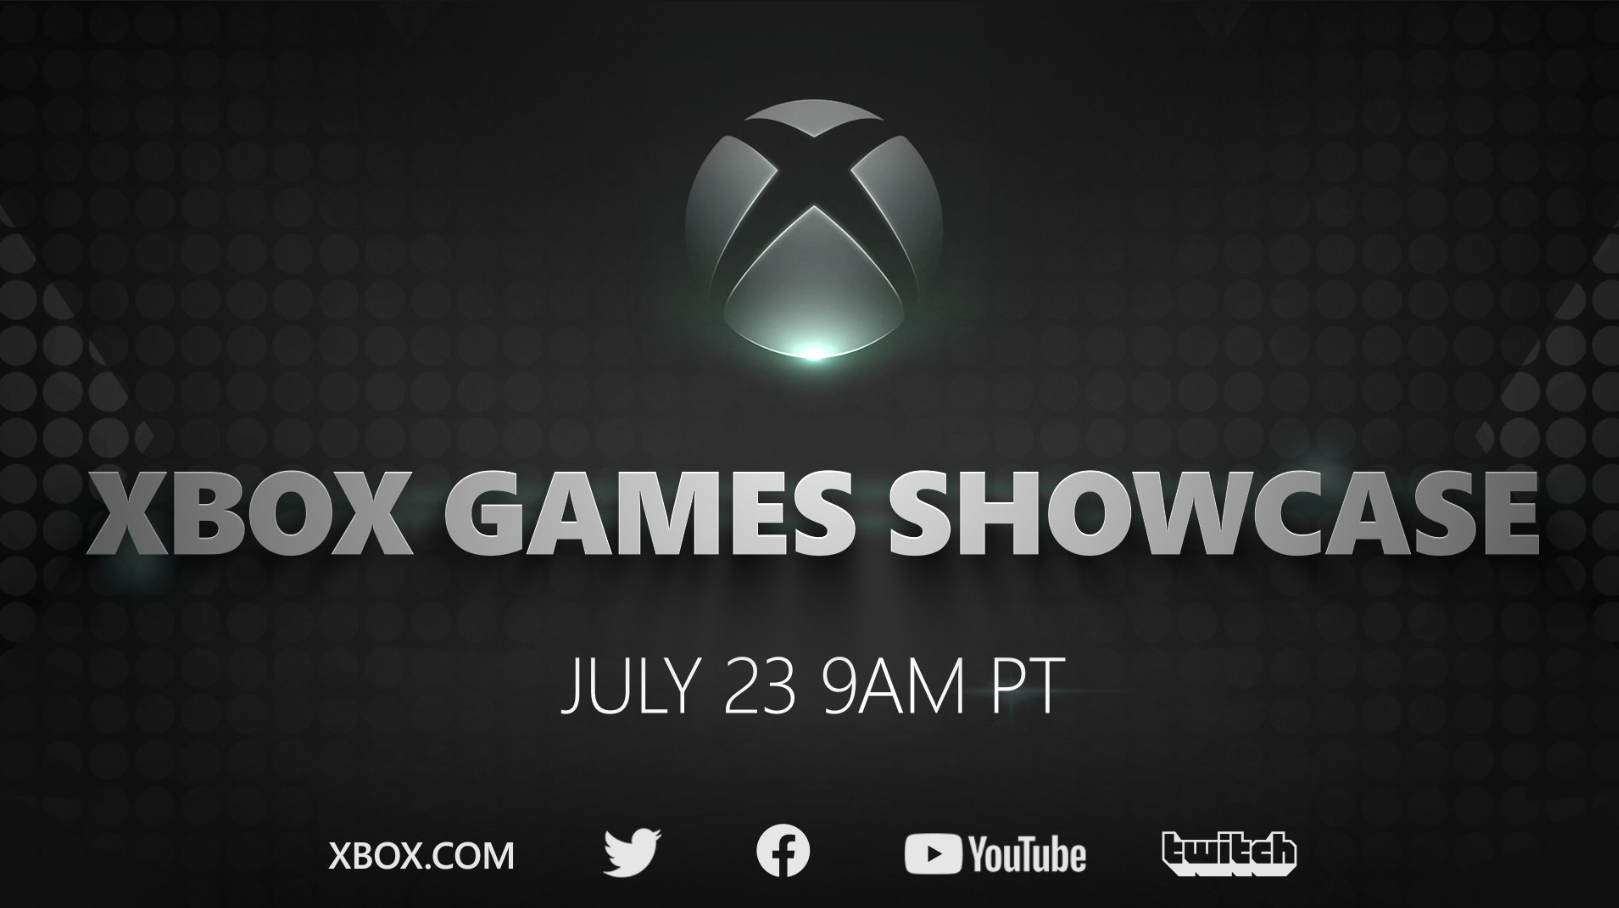 Microsoft's first-party Xbox Games Showcase streams July 23rd